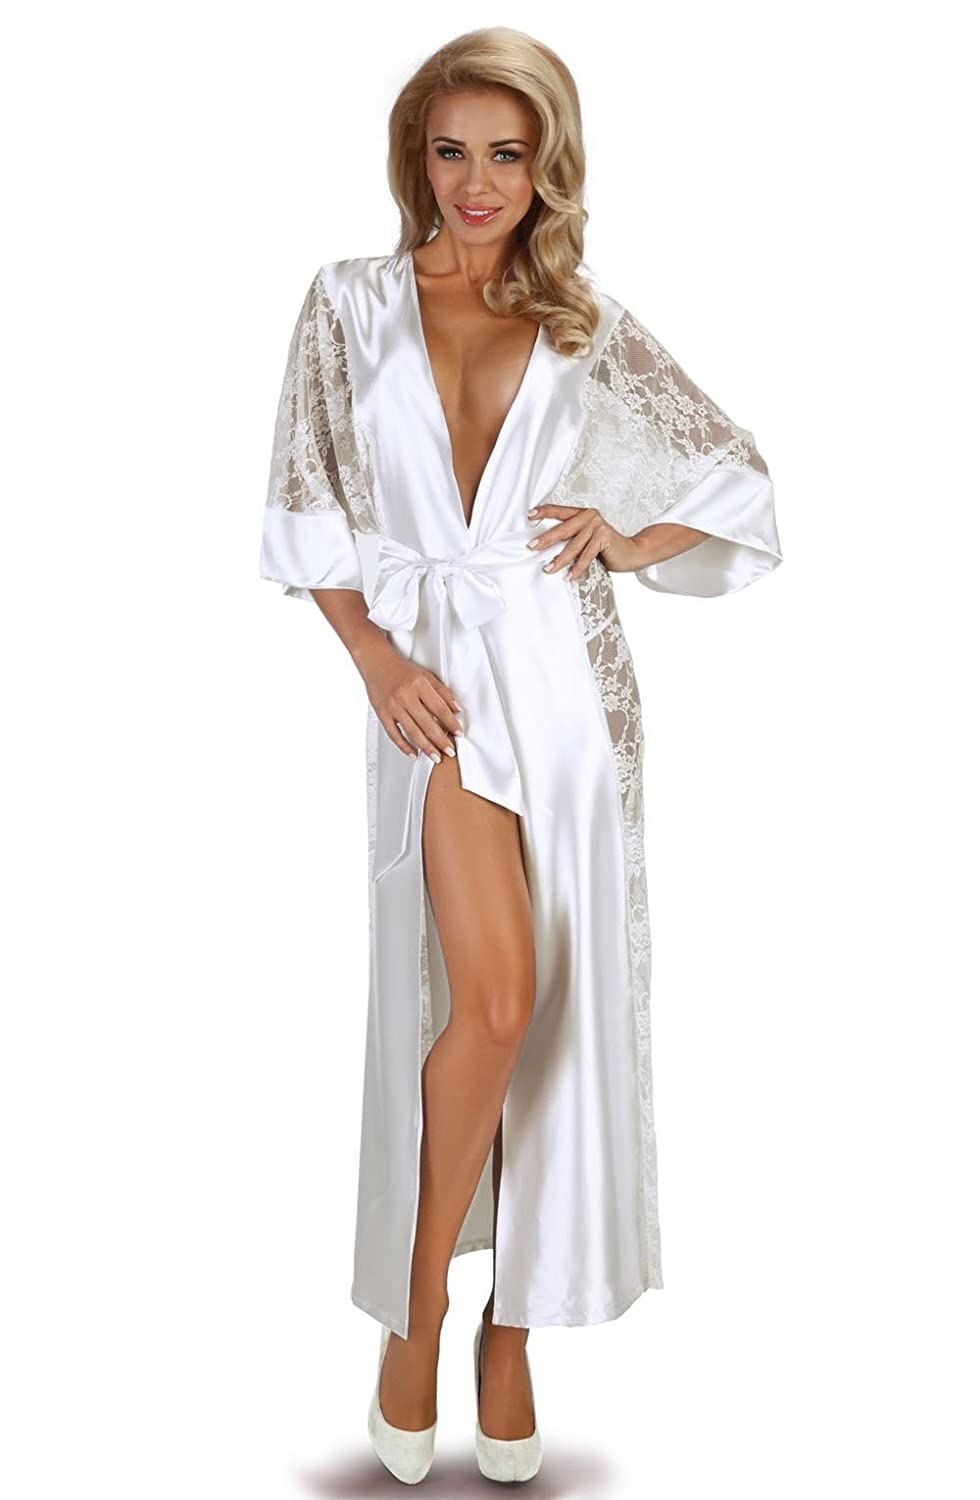 01faf6b580 Ladies Adult Full Length Satin Bridal White Dressing Gown Robe Nightdress  Matching Thong 8 10 12 14 16 UK  Amazon.co.uk  Clothing